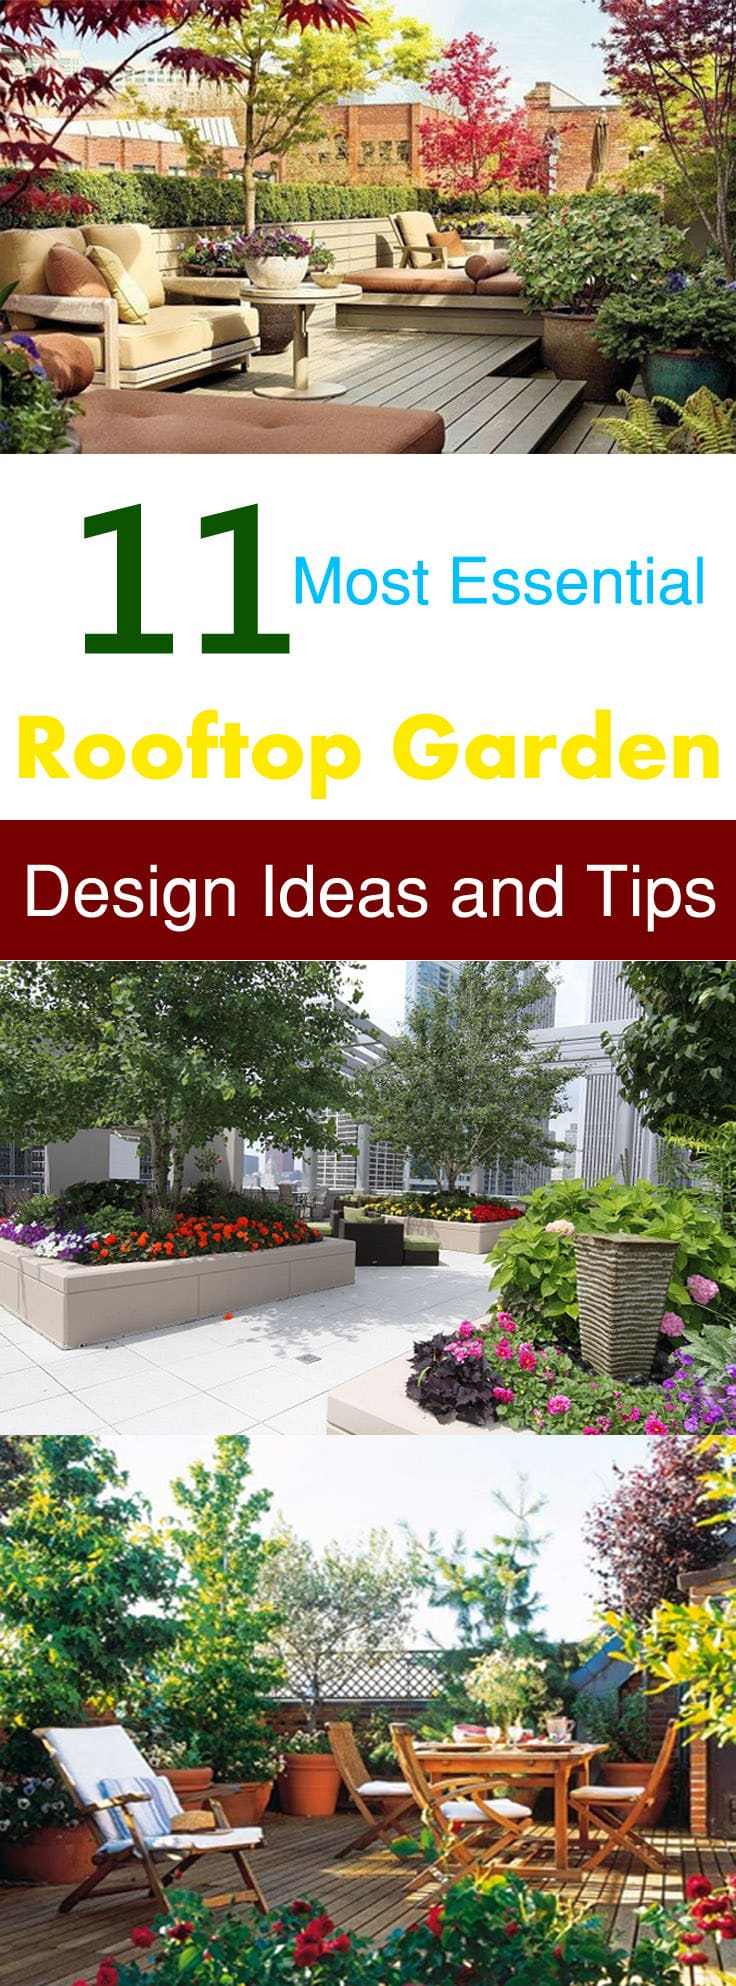 Roof Terrace Garden Design cool garden design idea green oasis on the roof terrace Whether You Have A Rooftop Or You Are Planning To Have These 11 Rooftop Garden Design